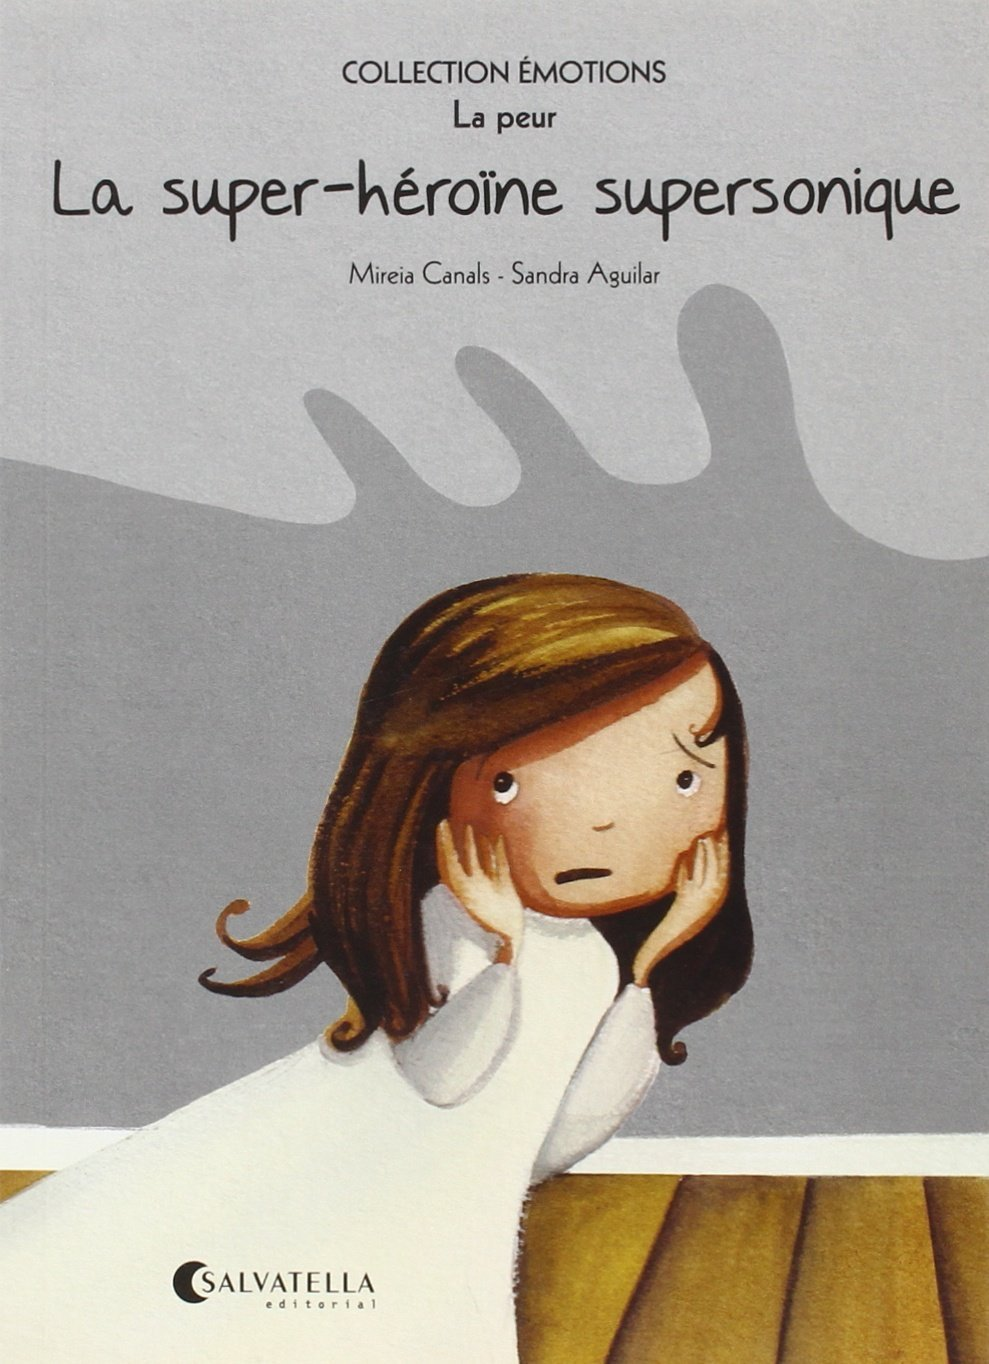 La super-héroïne supersonique (French) Paperback – September 15, 2015